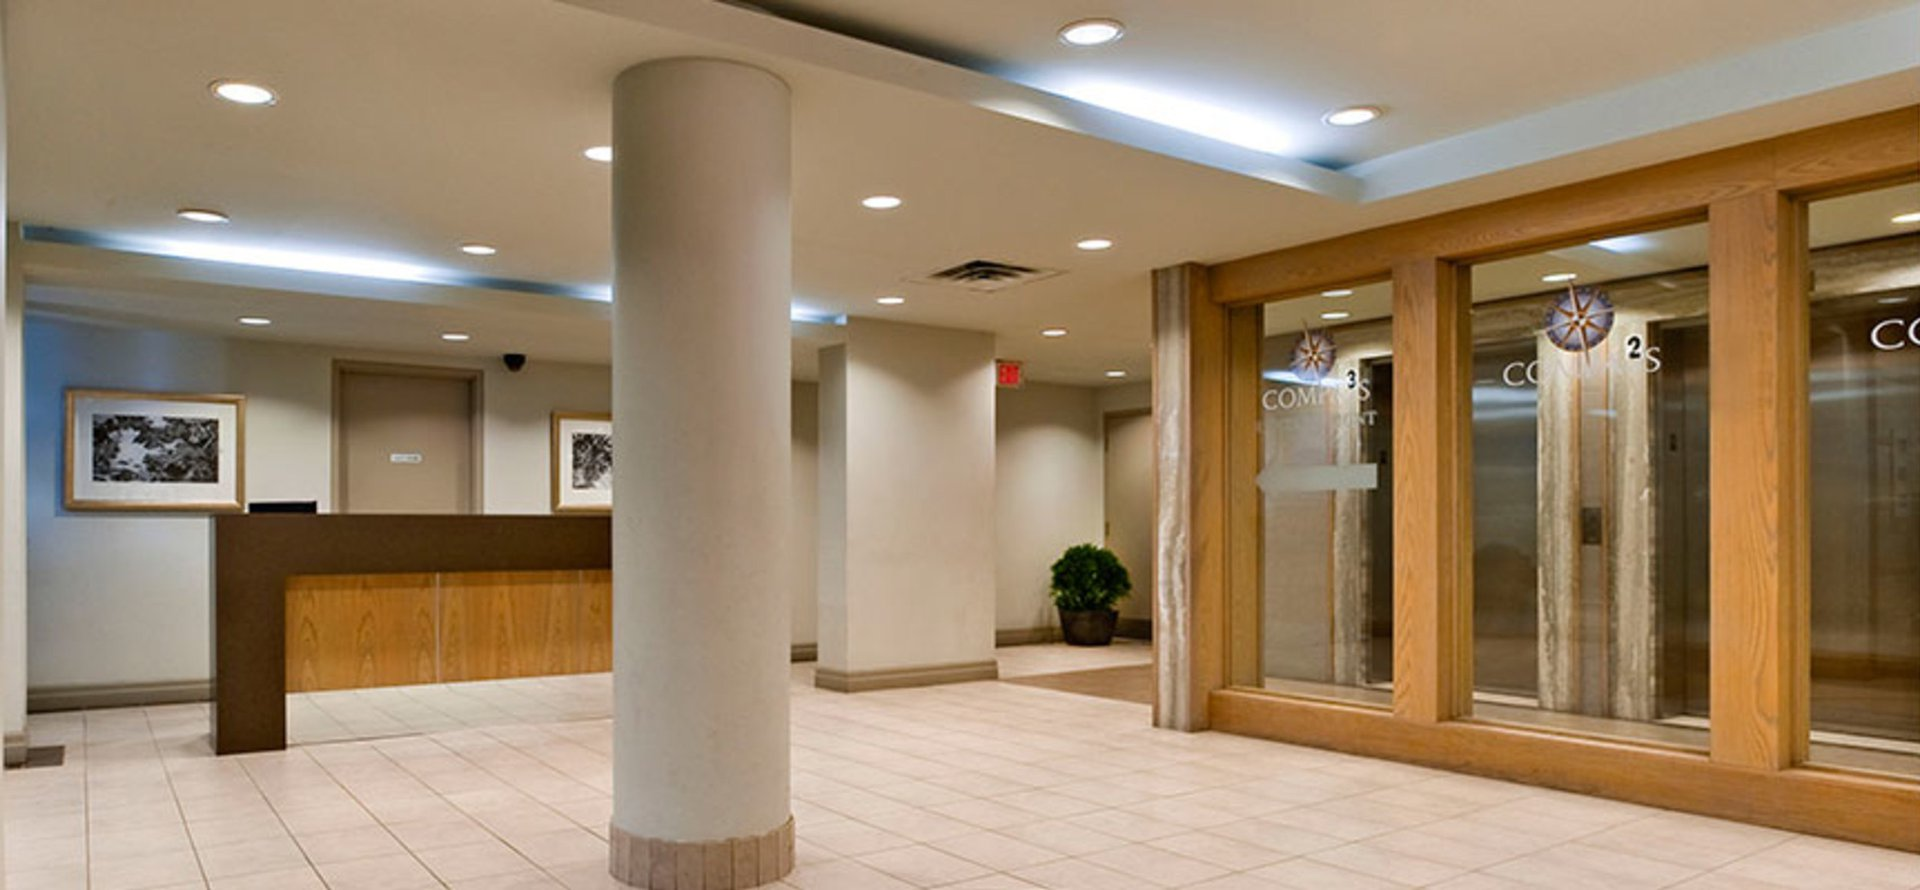 Mid-Rise-Apartment for rent at 64 Bramalea Road, Brampton, ON. This is the foyer entrance with tile floor.